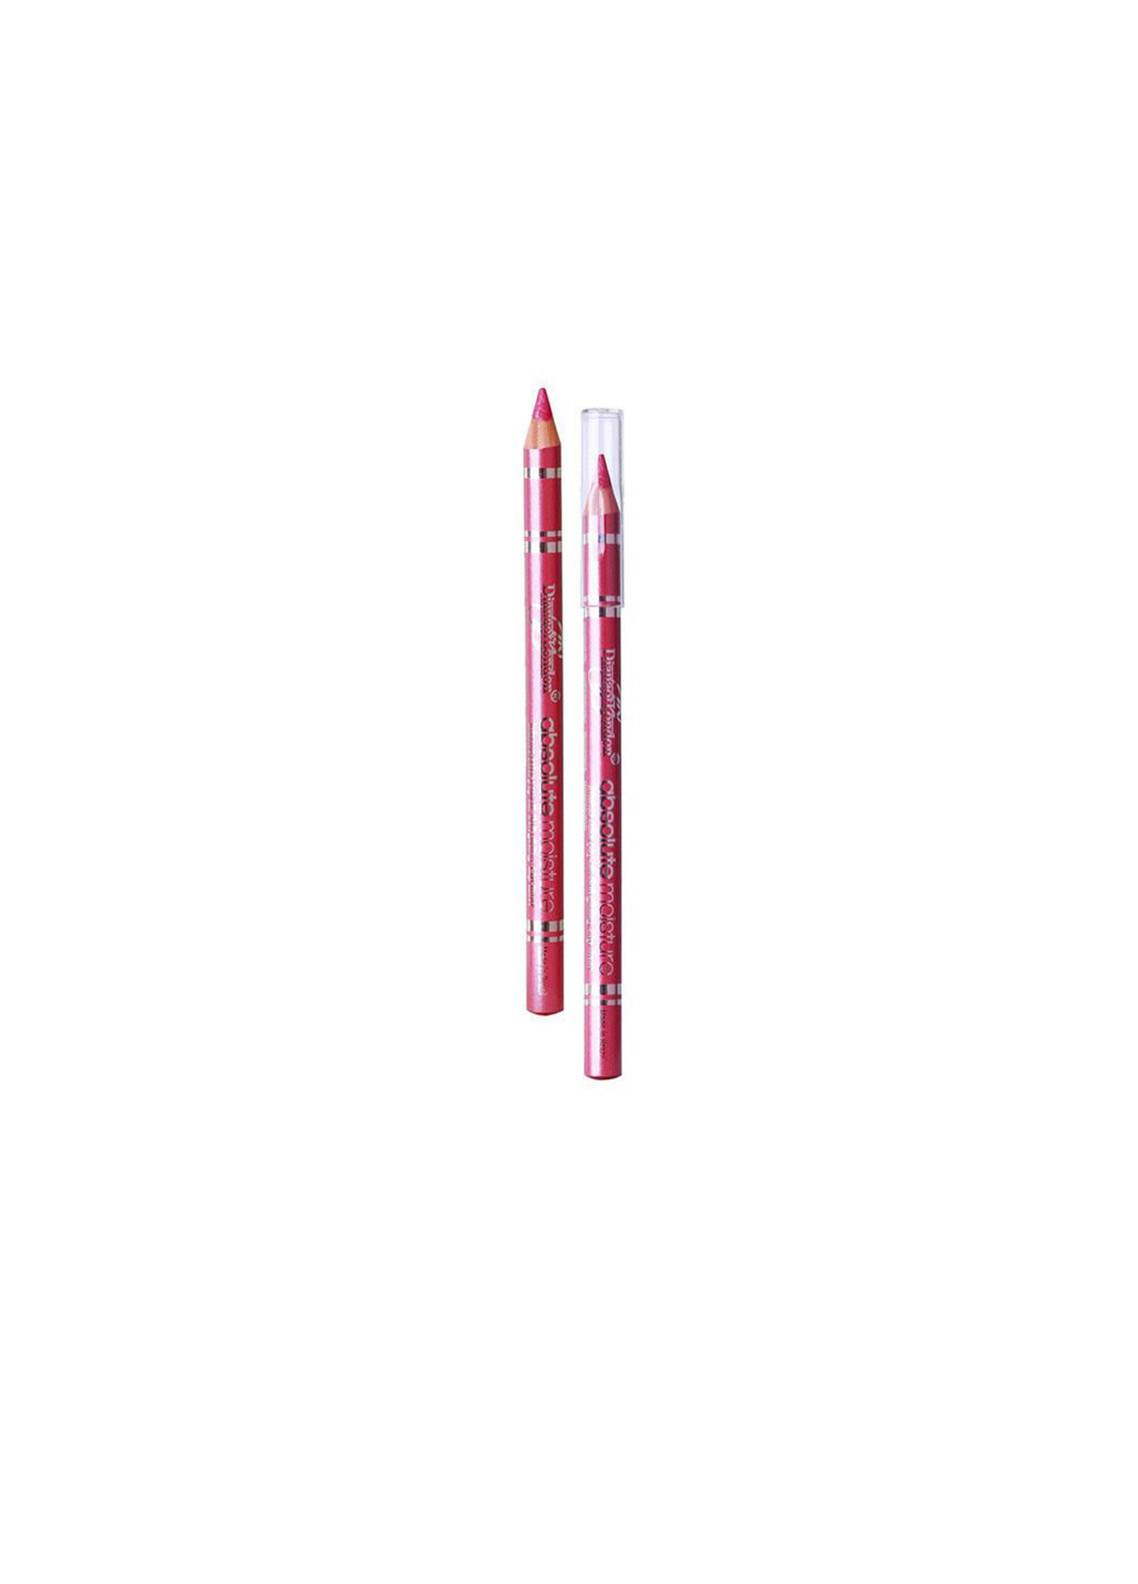 Diana Of London Absolute Moisture Lip Liner - Pink Kiss - 05